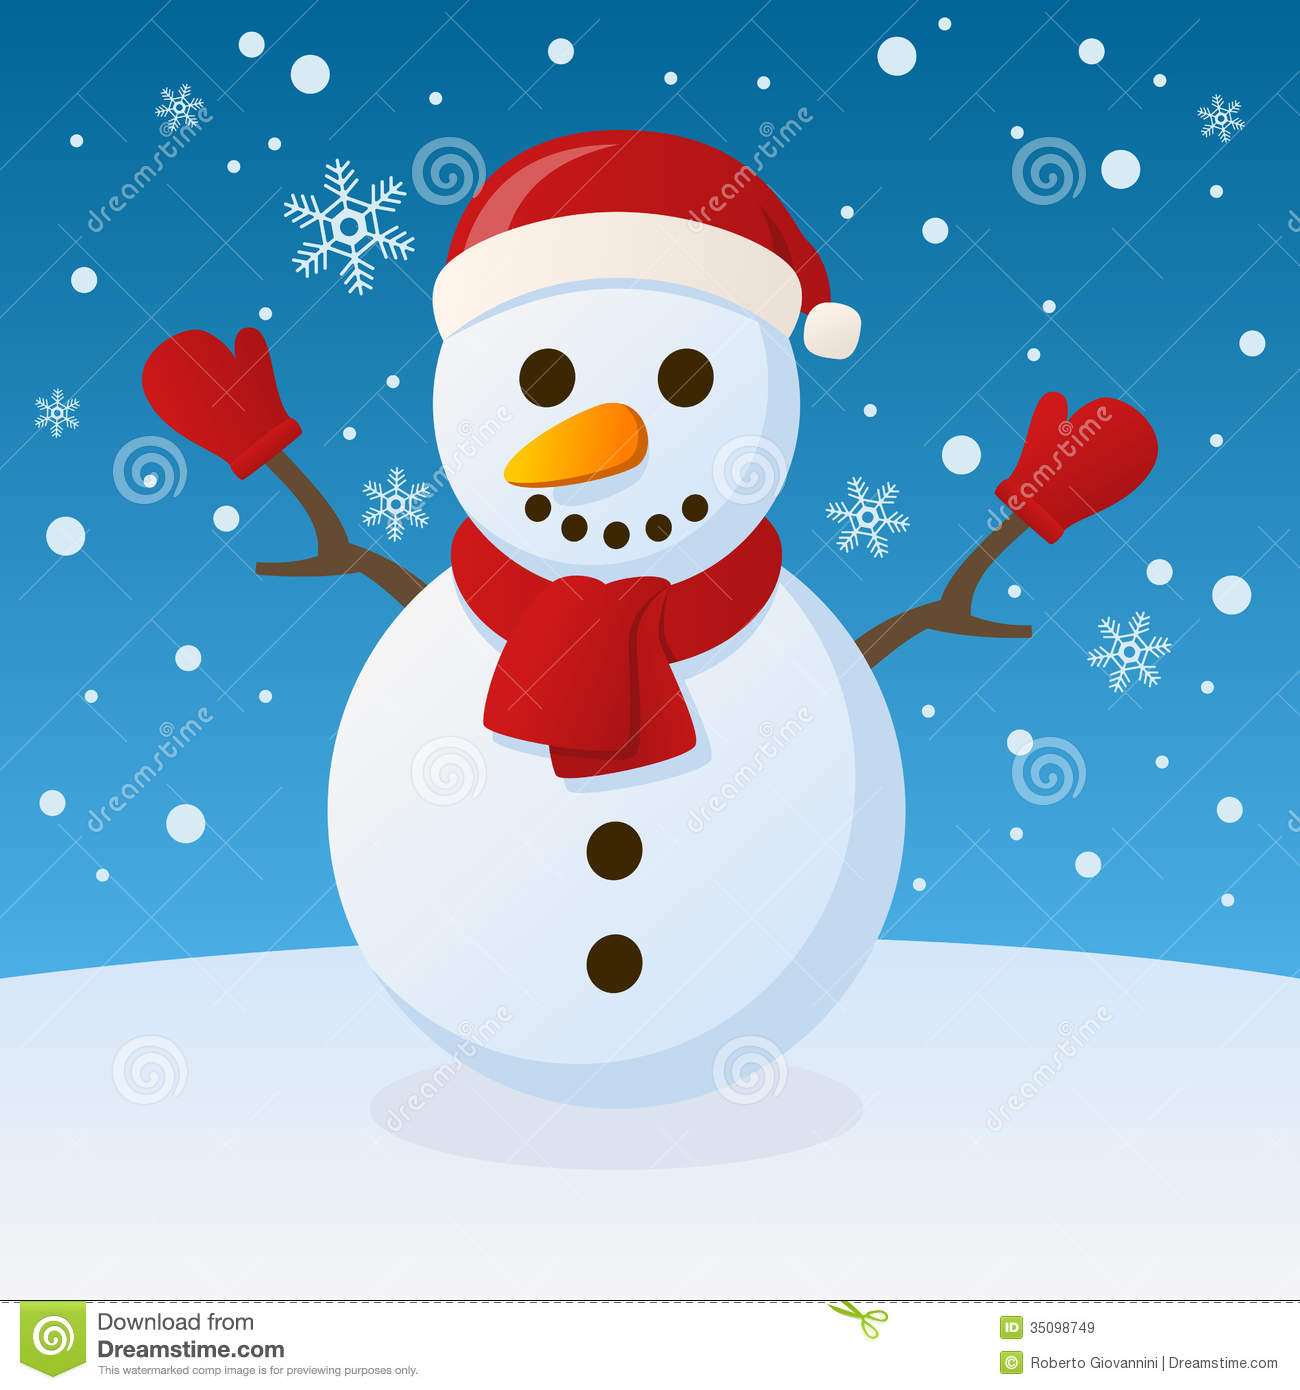 Free Animated Falling Snow Wallpaper Snowman Christmas On The Snow Stock Vector Illustration